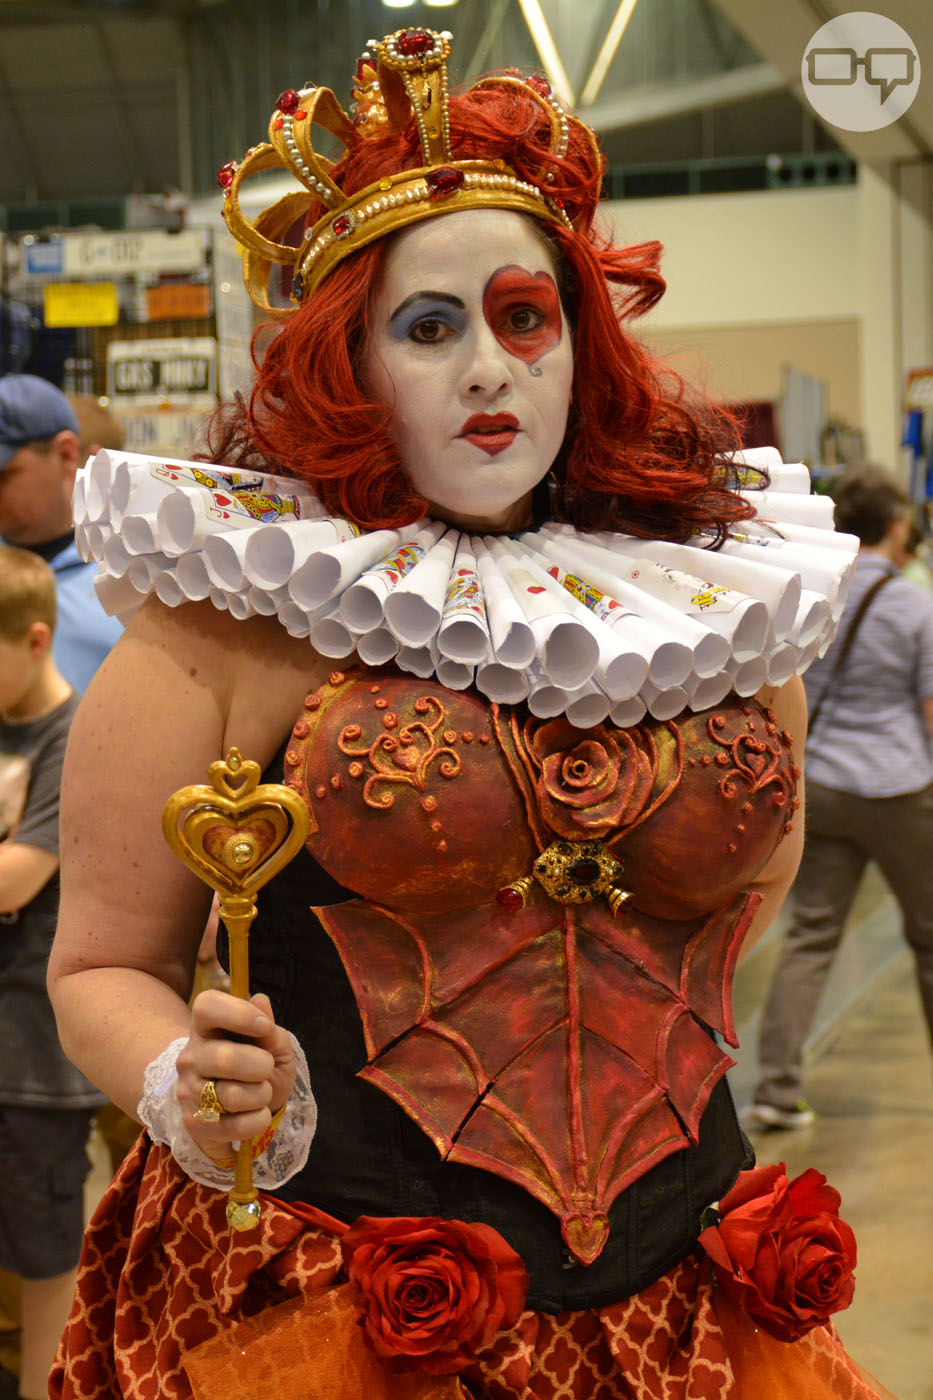 Planet-Comicon-2015-ProNerd-Cosplay-D4-2